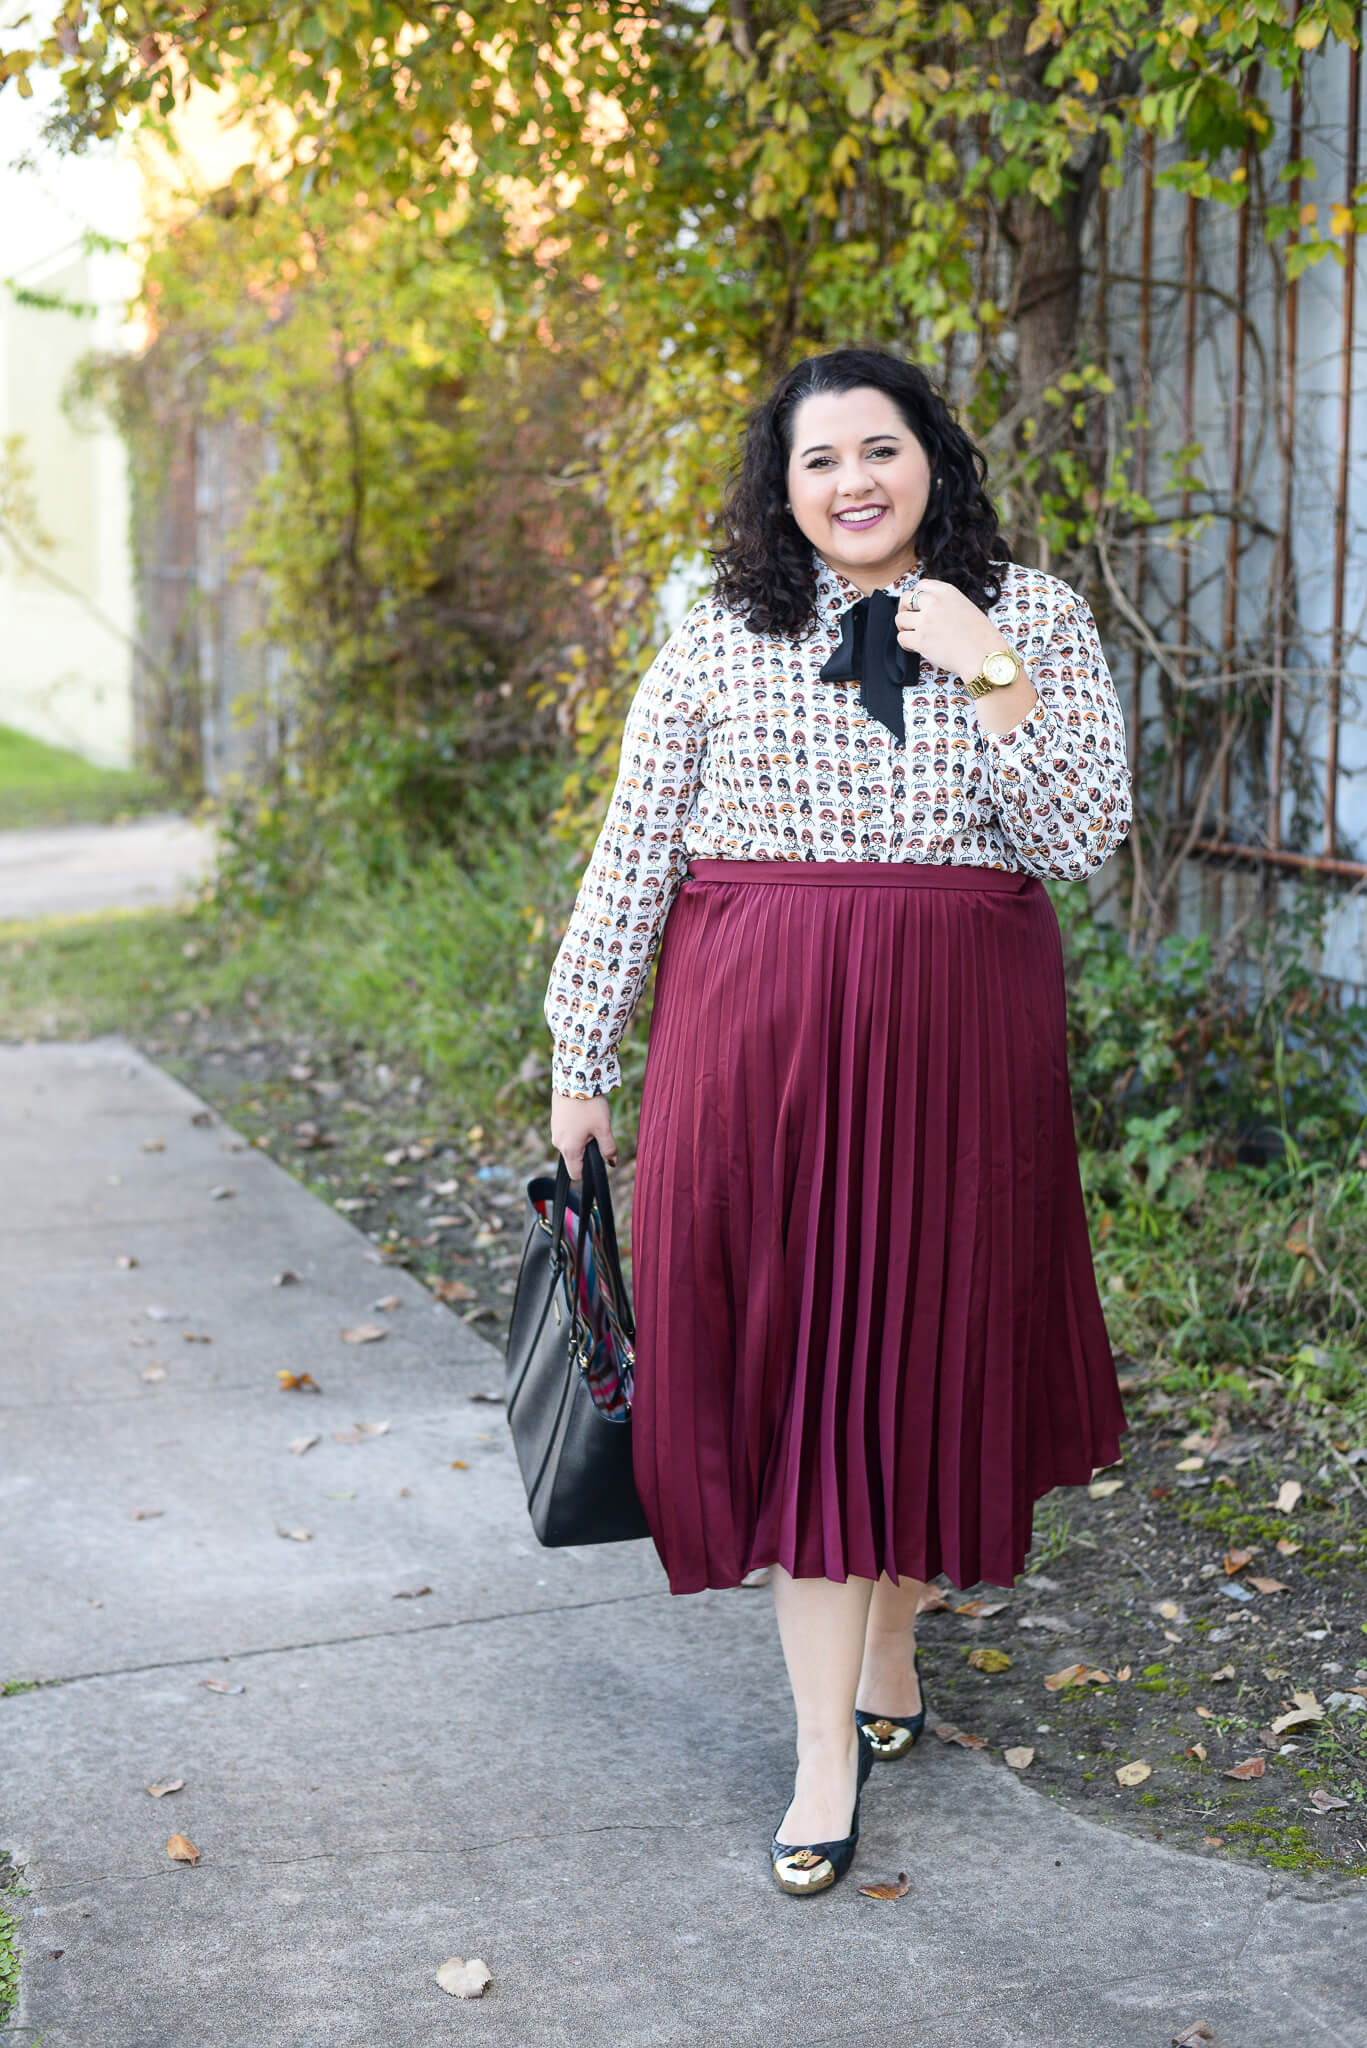 What to wear to work as a plus size woman